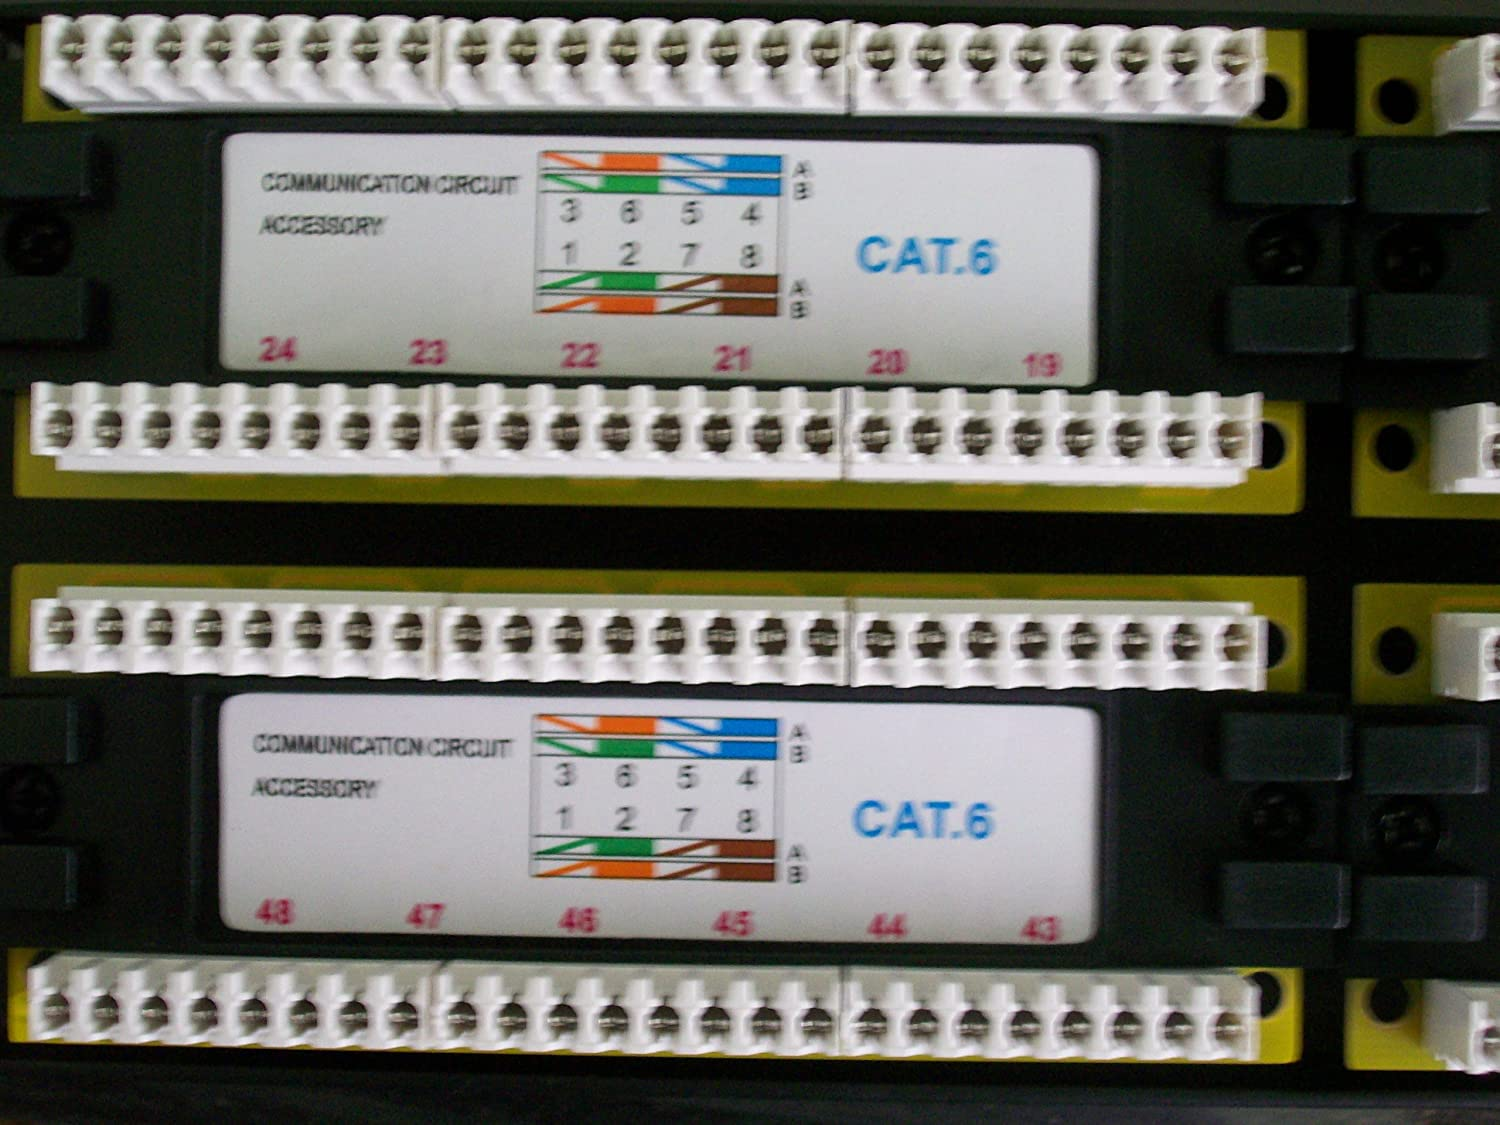 Amazon.com: Tuff Jacks Cat6 48 Port Patch Panel 19 Inches x ... on